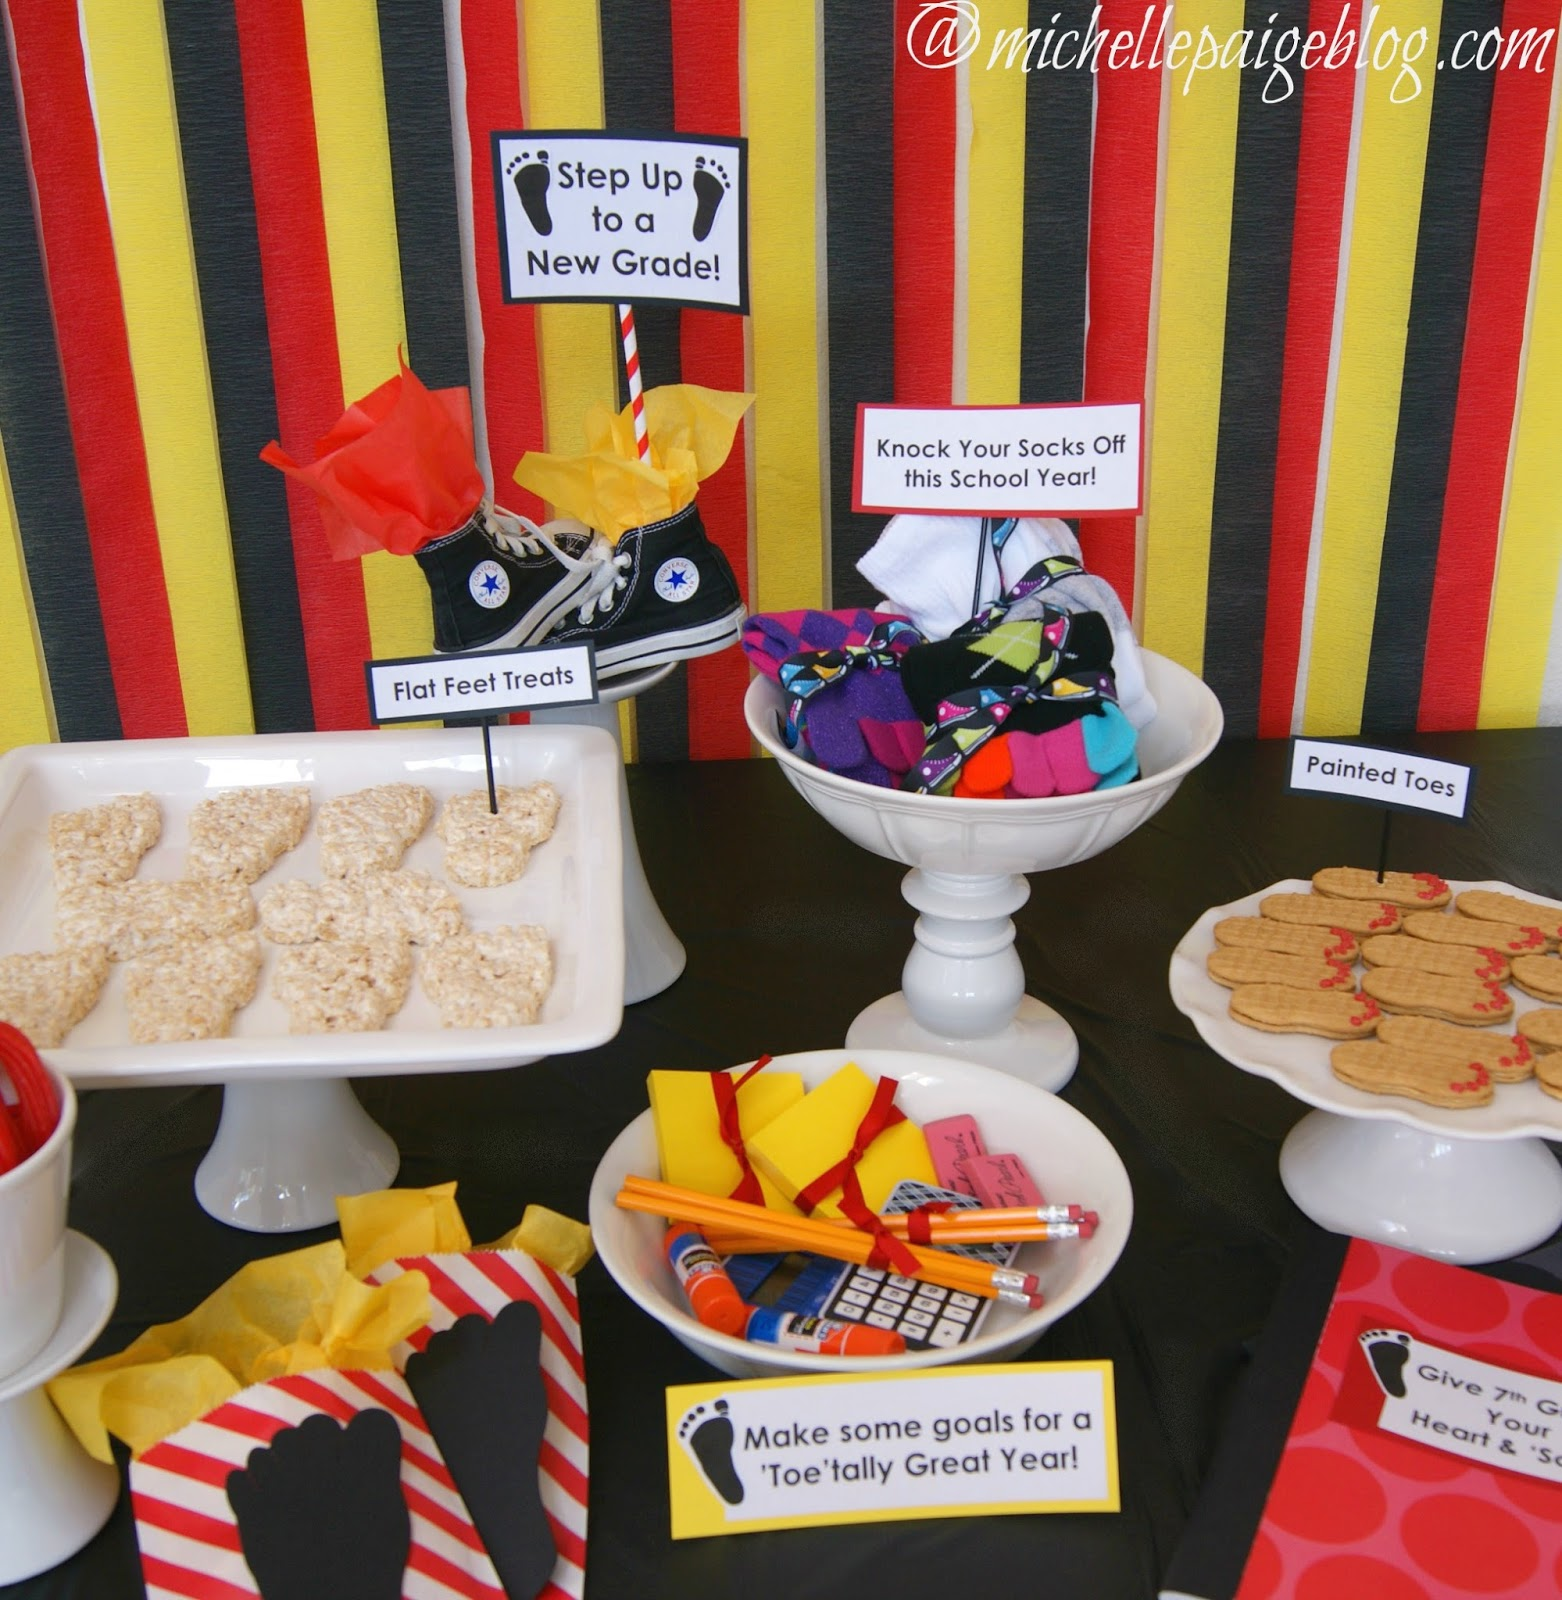 Michelle paige blogs foot themed back to school party for Back to school party decoration ideas